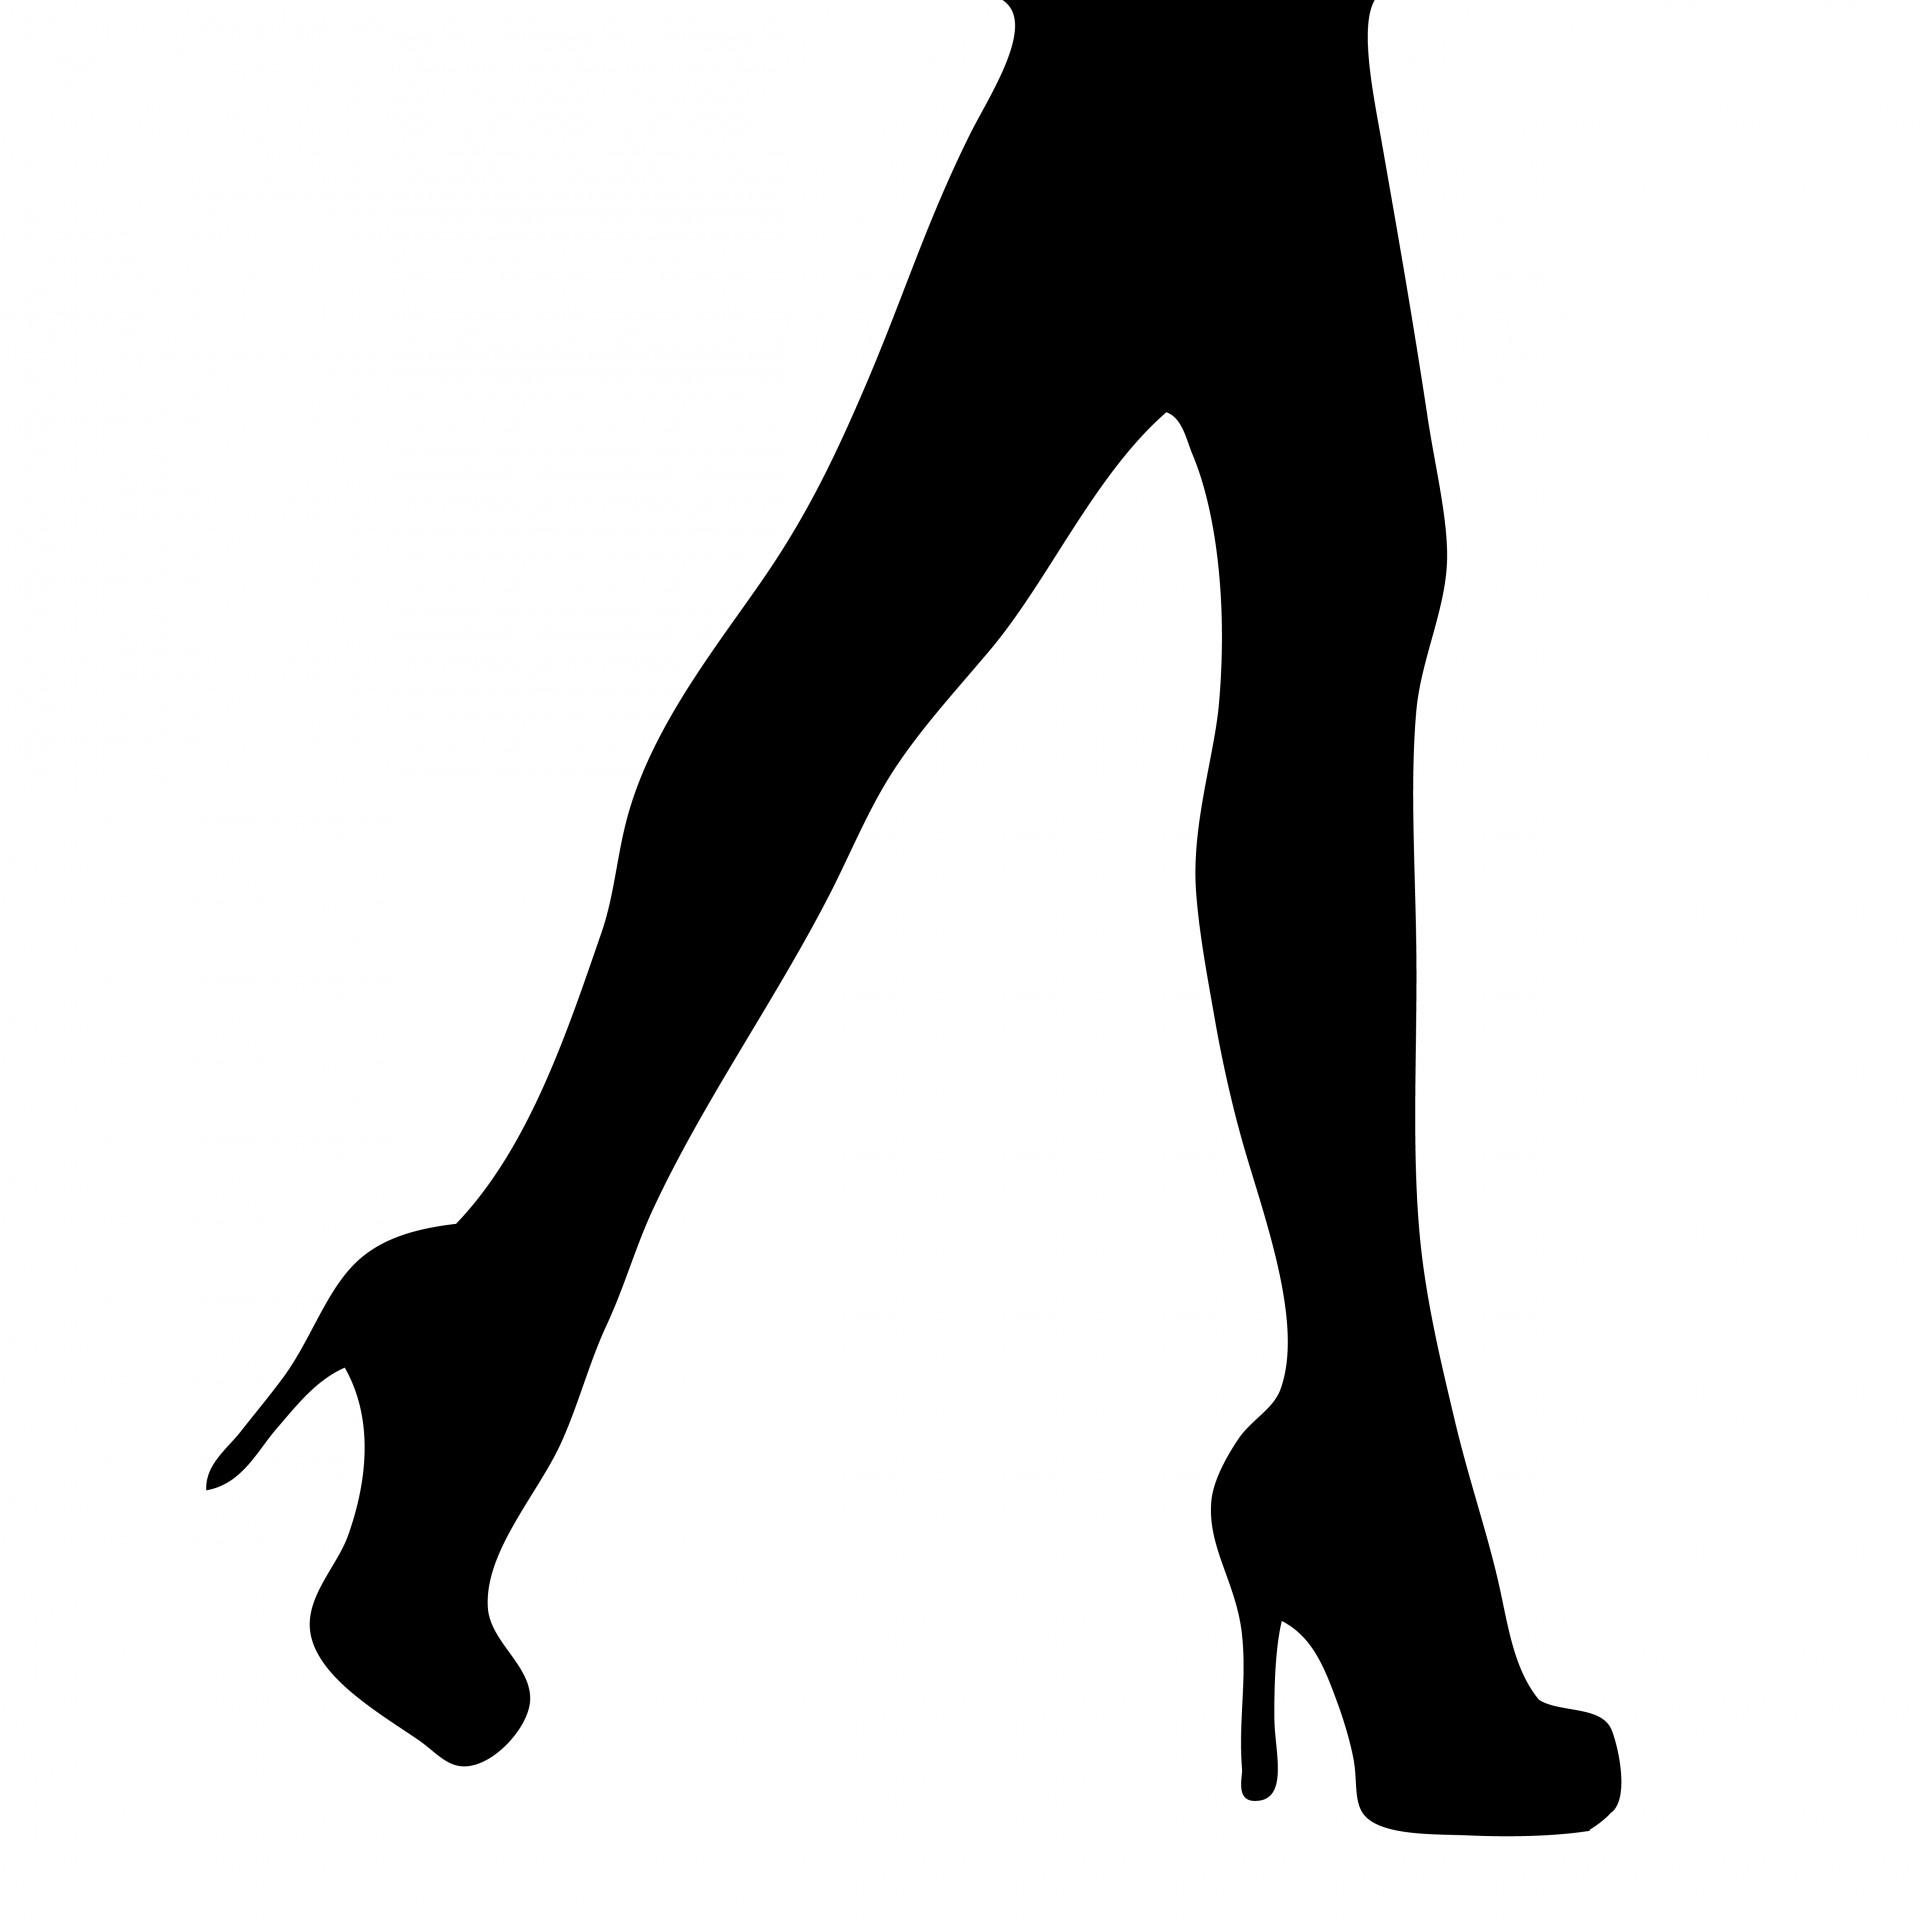 1920x1920 Legs In High Heels Clipart Free Stock Photo